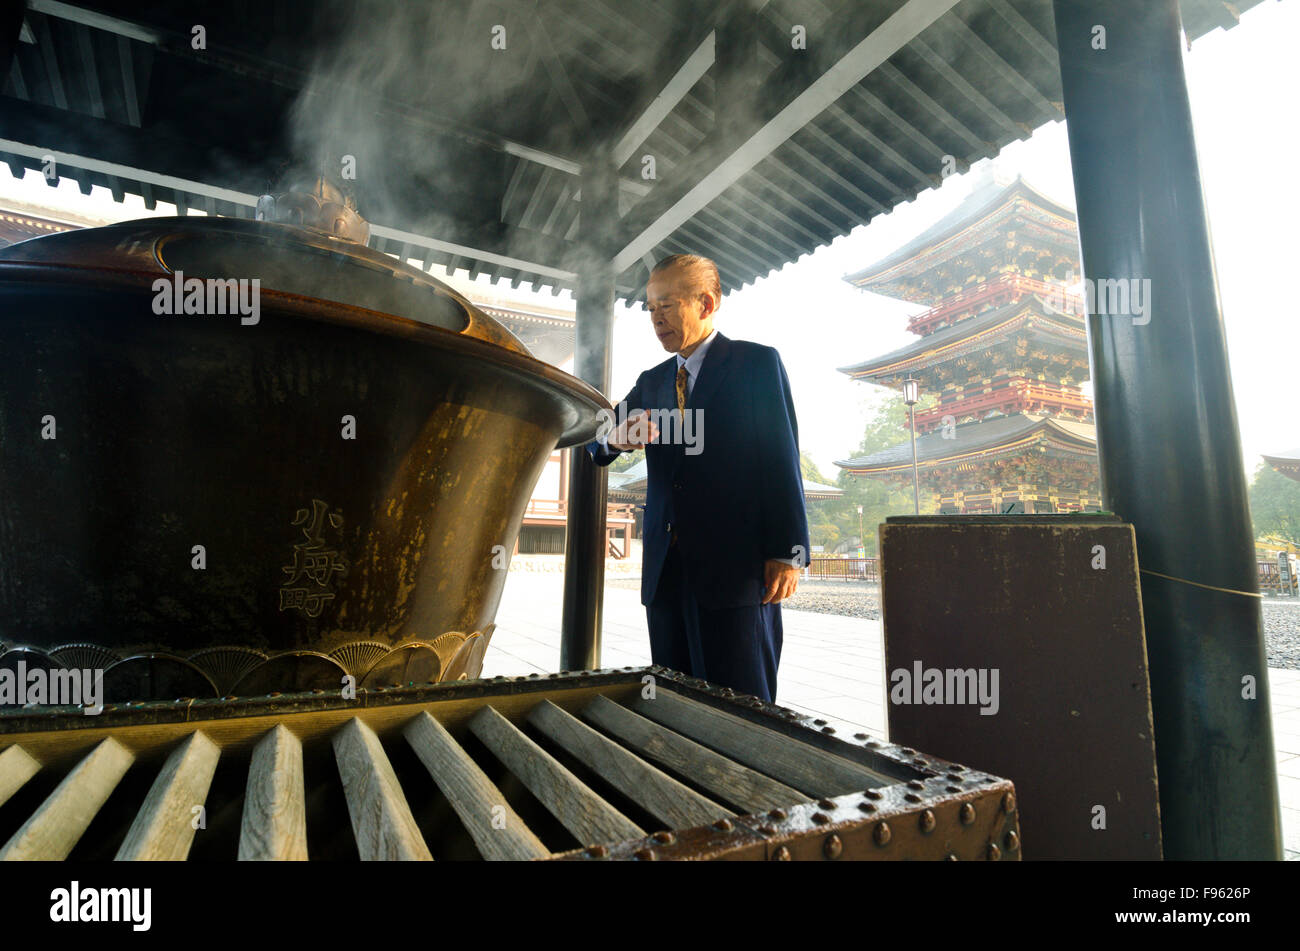 A businessman pauses to inhale soothing fumes at the Shinshoji Temple in Narita, Japan - Stock Image